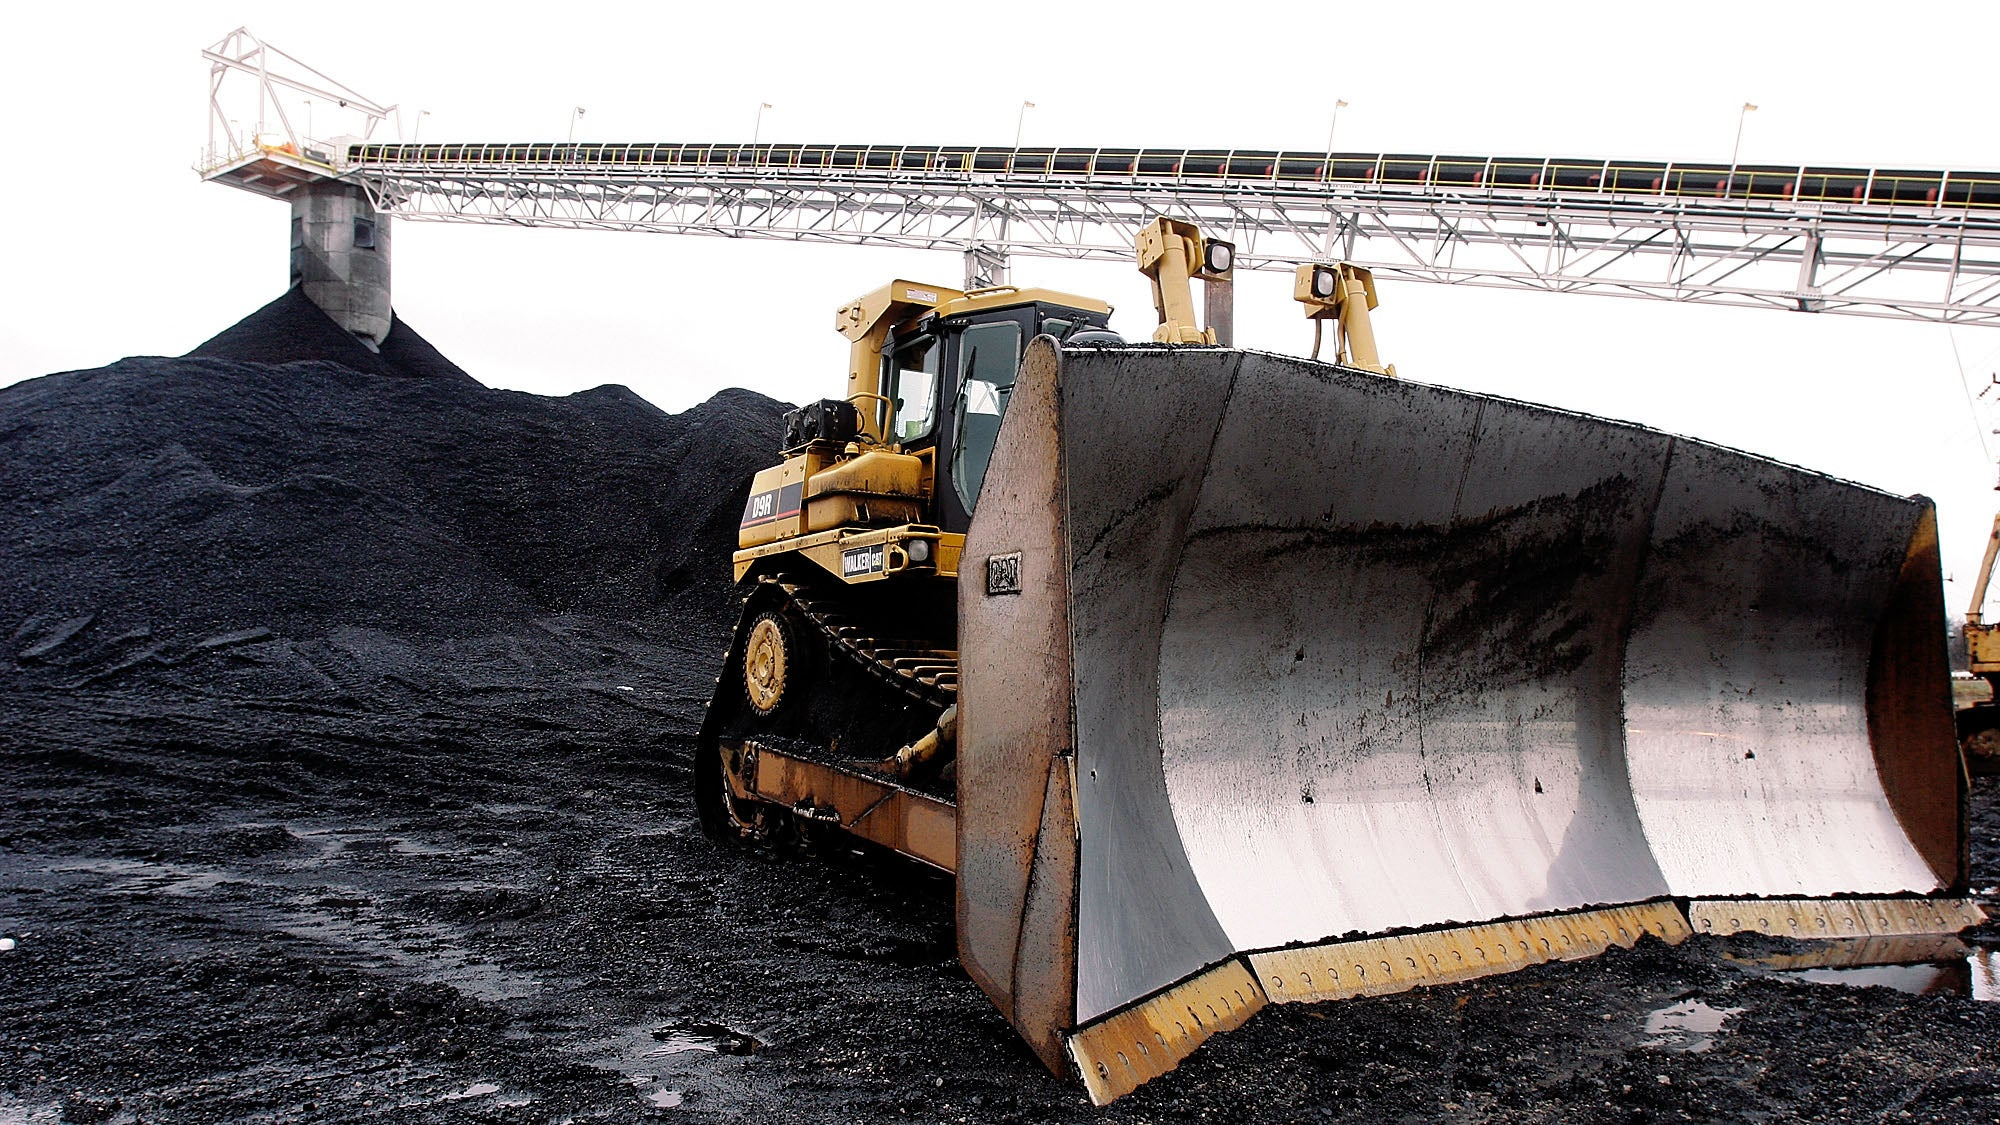 Peabody, the Biggest US Coal Miner, Faces Bankruptcy